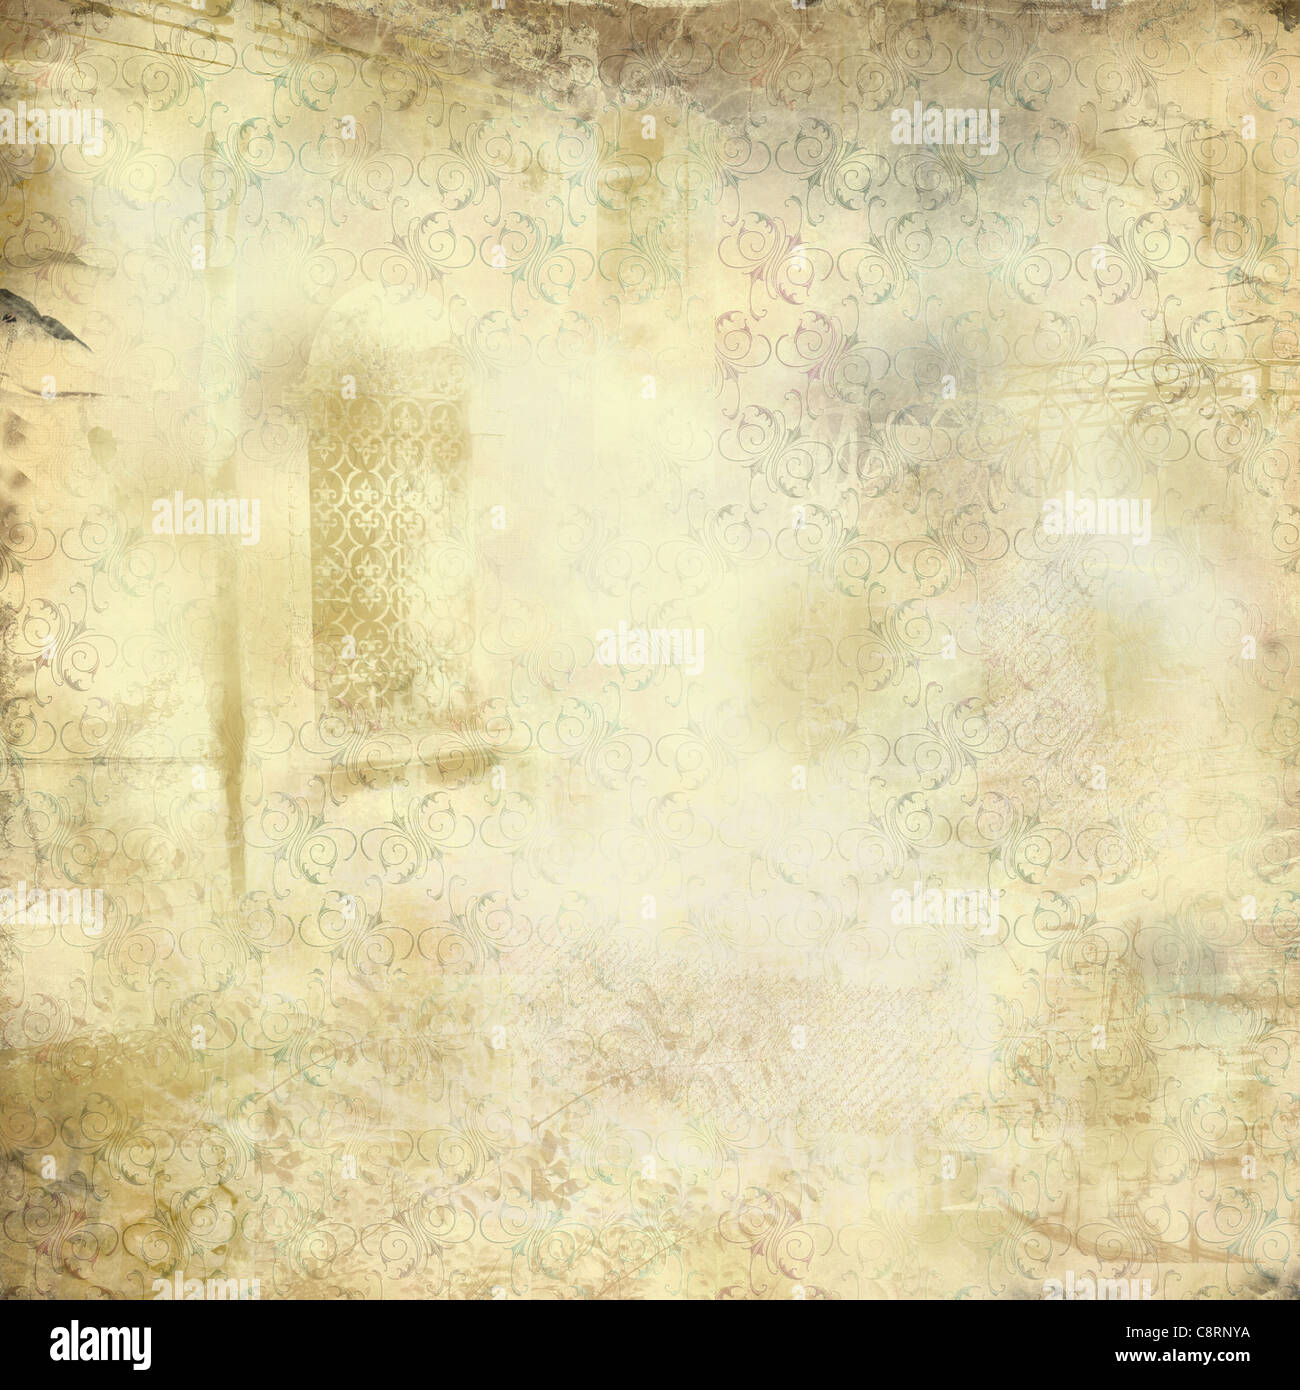 Grunge vintage texture with stylized floral pattern and  faded images in sepia  and yellow tones. - Stock Image